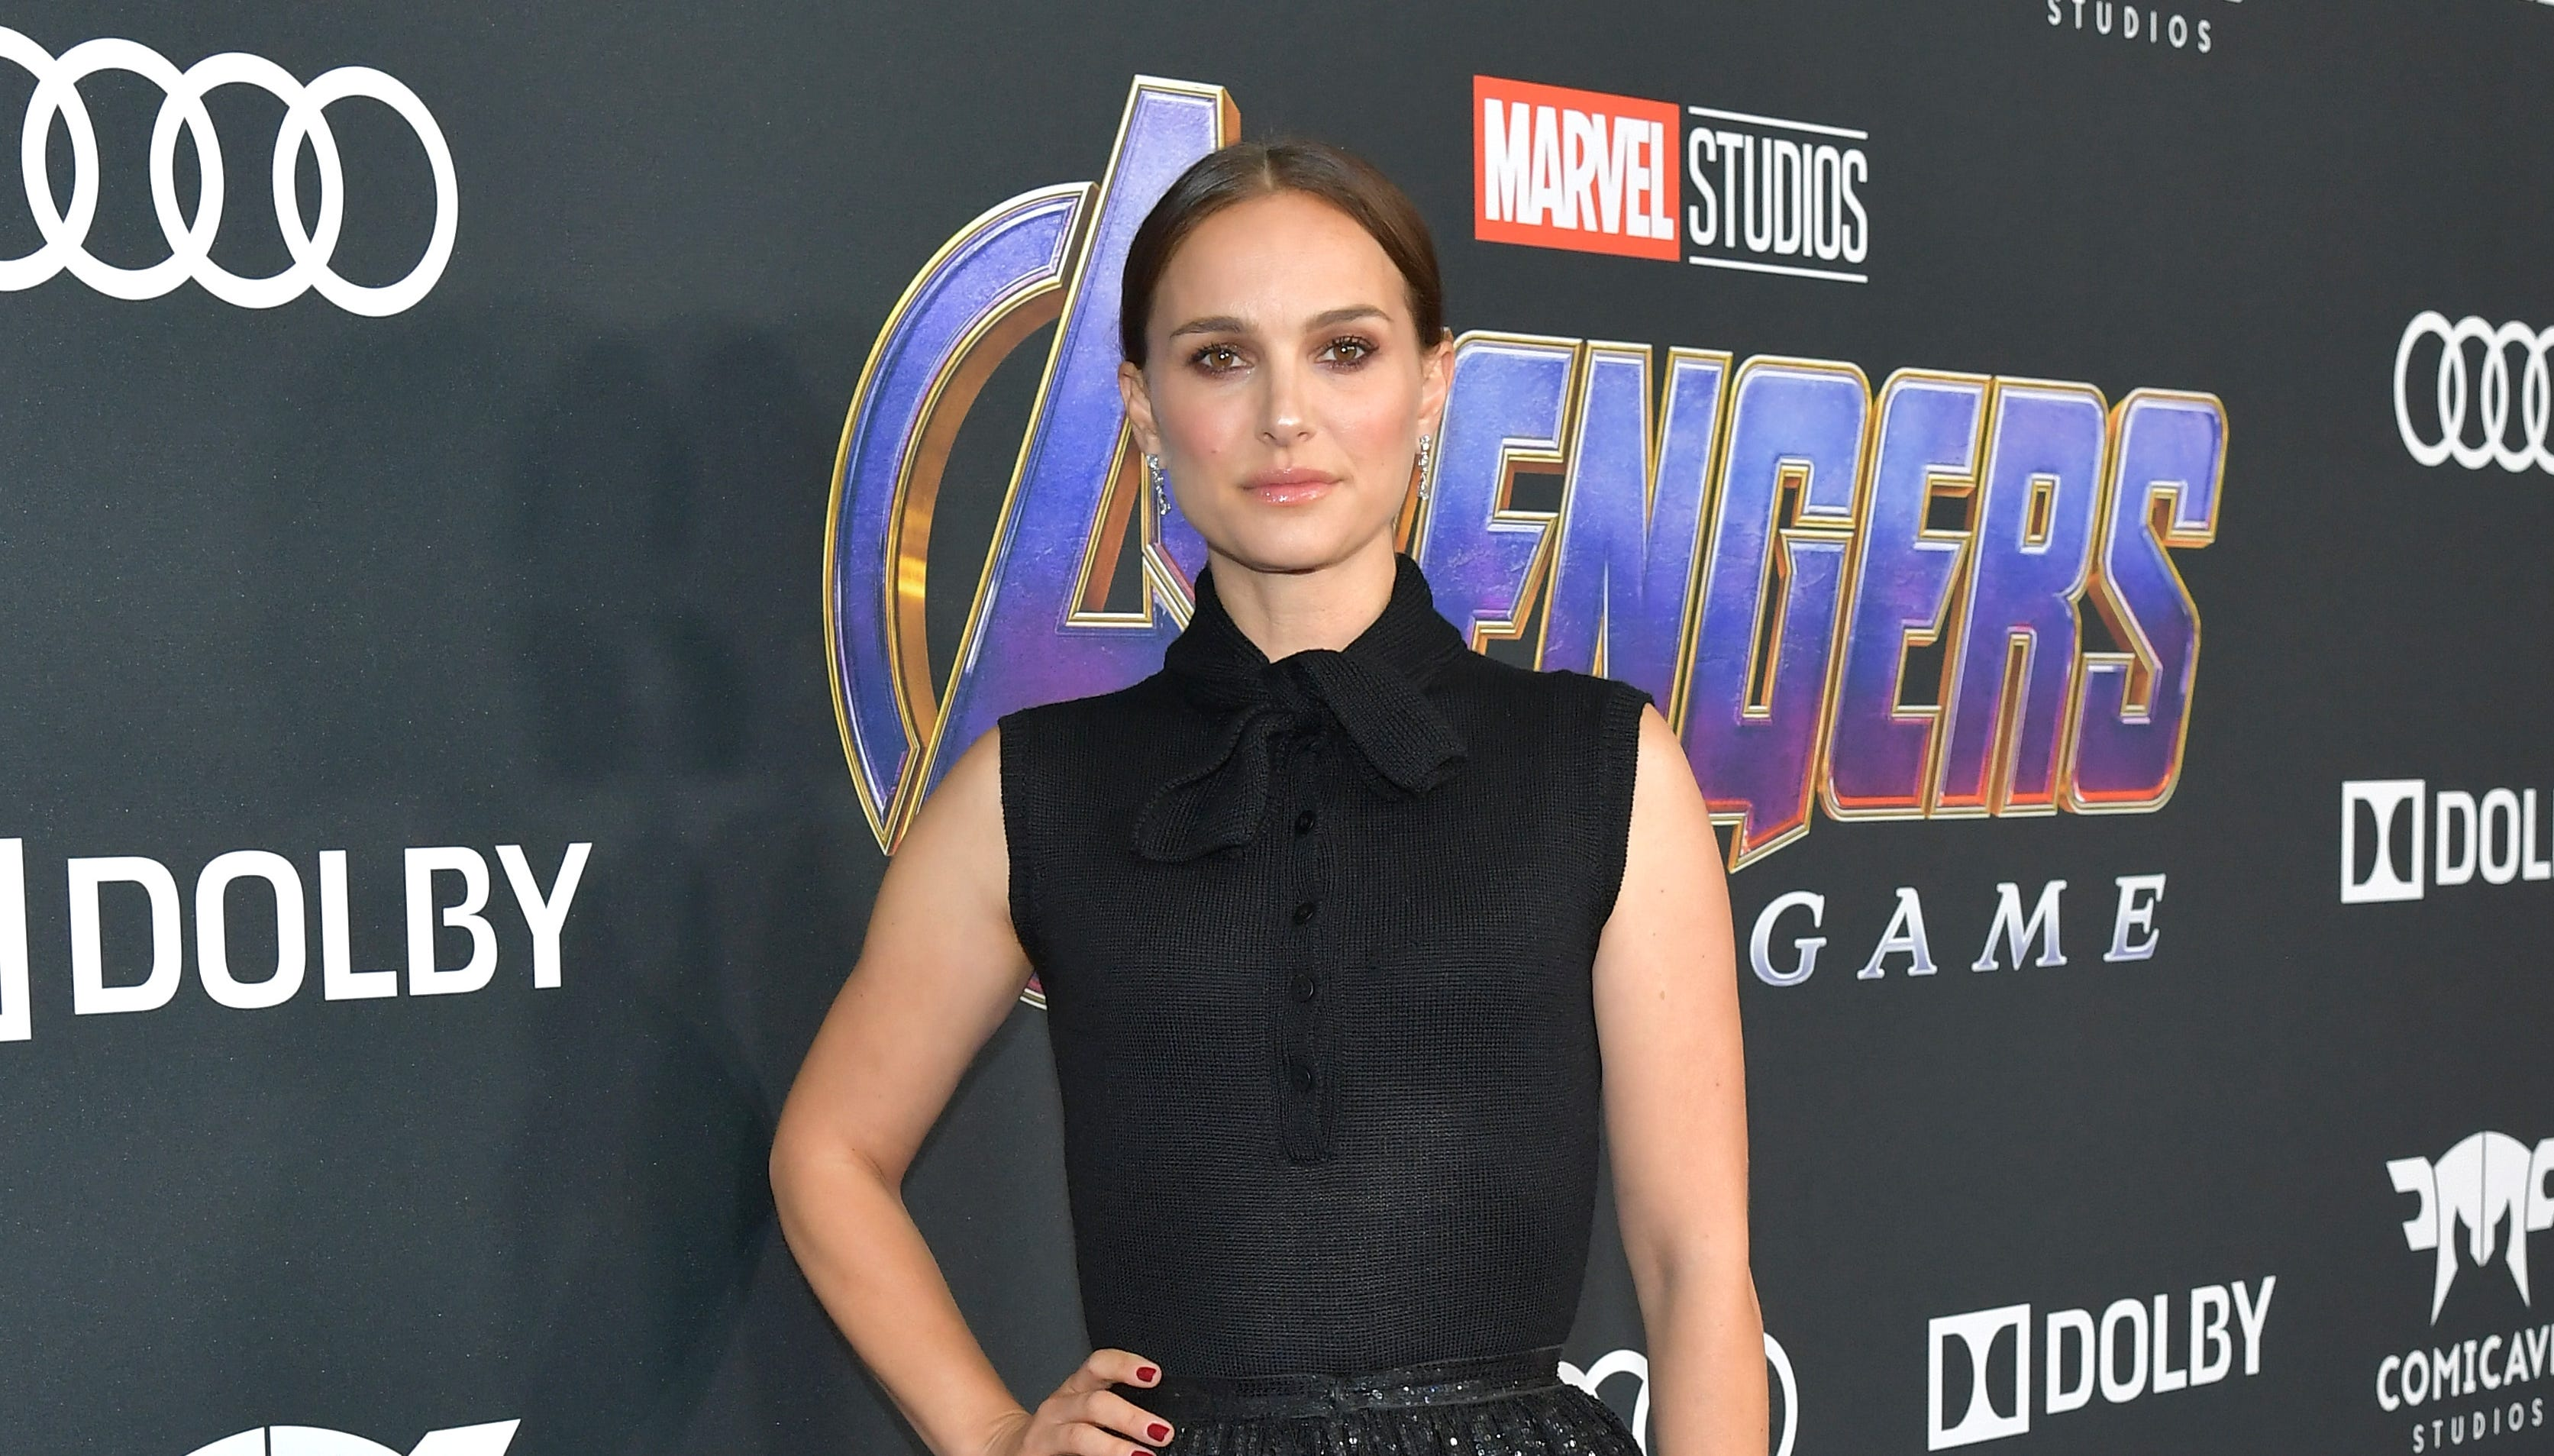 Why Natalie Portman was at the 'Avengers: Endgame' premiere and Tom Holland wasn't - USA TODAY